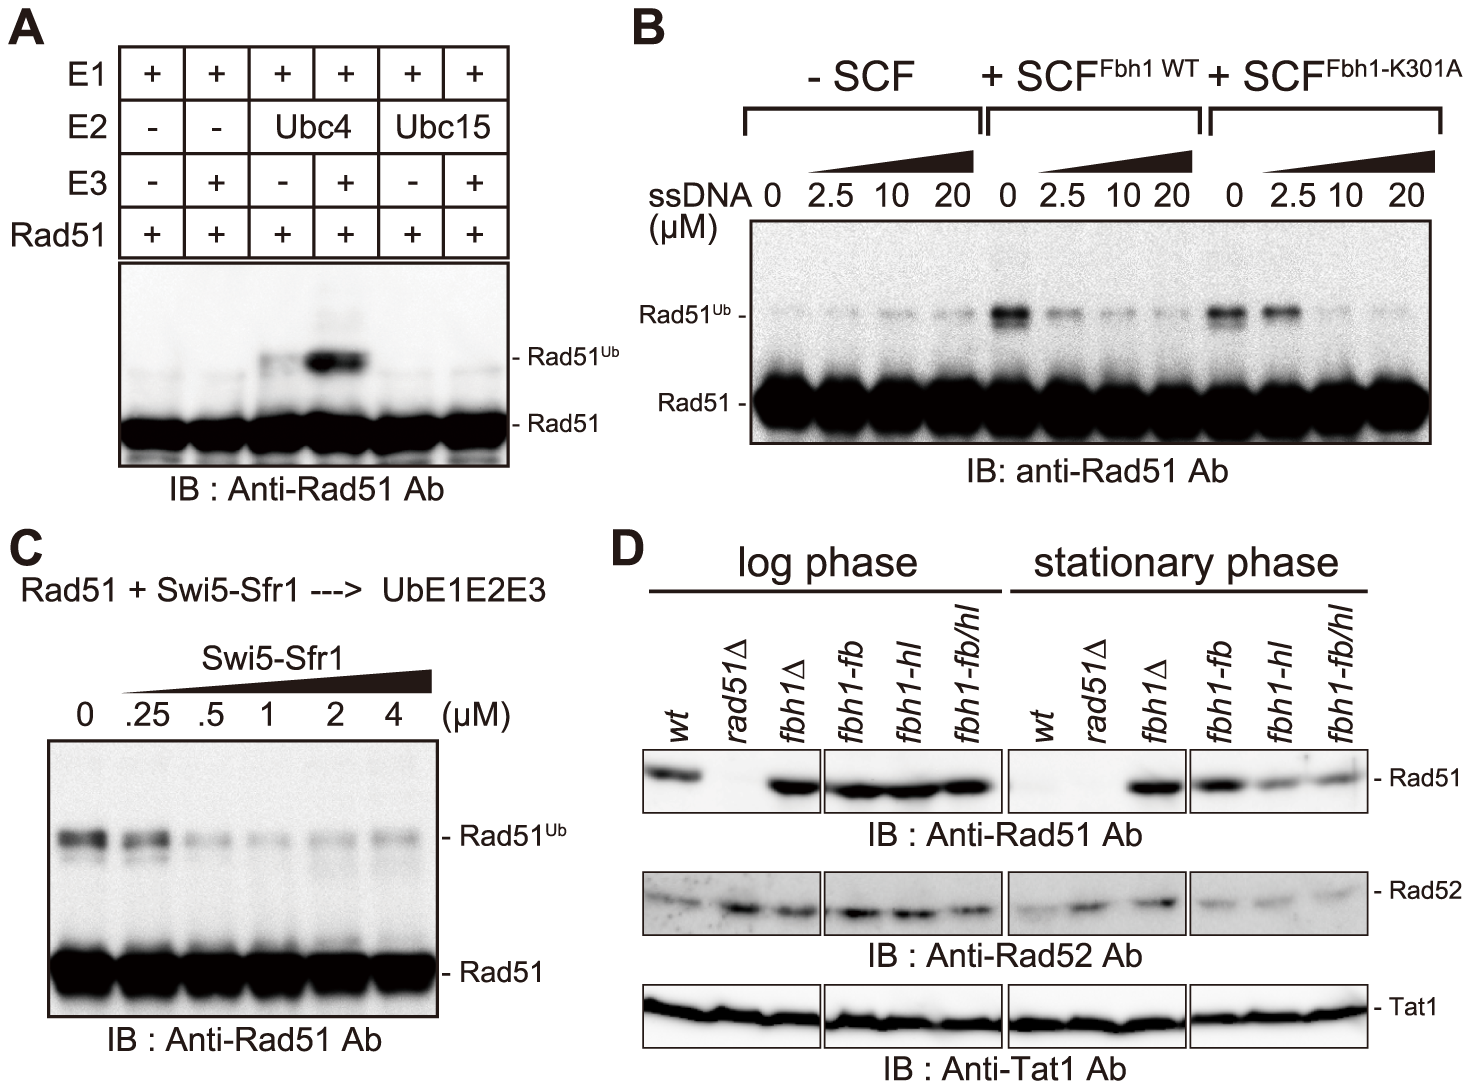 Rad51 is ubiquitinated <i>in vitro</i> in an SCF<sup>Fbh1</sup>-dependent manner.